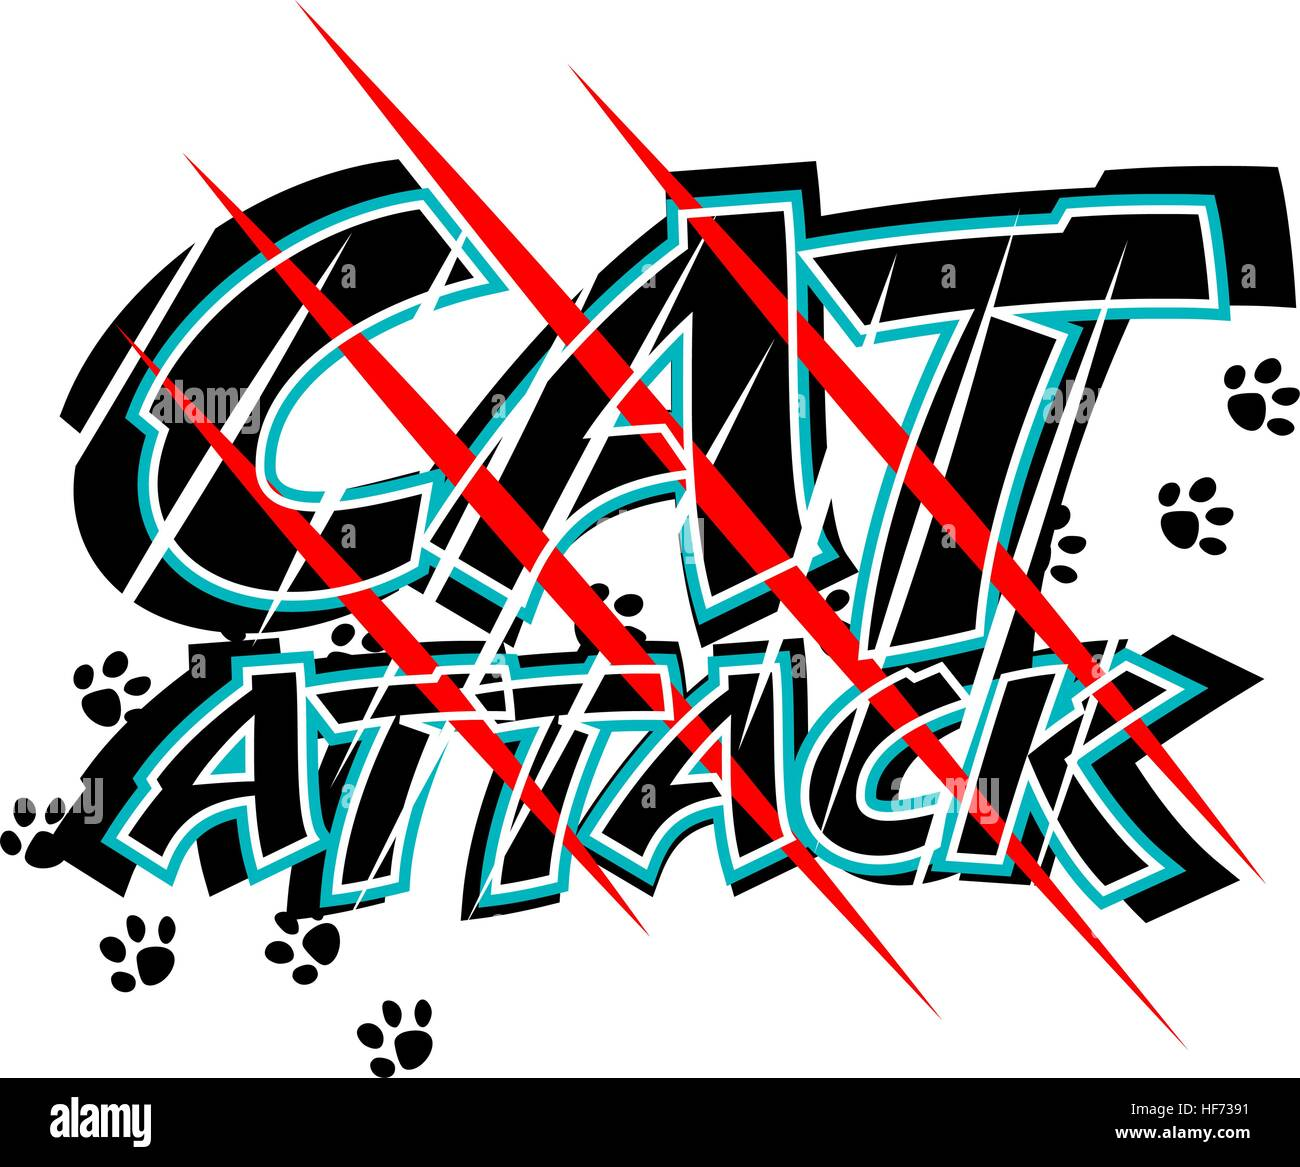 Vector illustration of claw scratch marks through the words cat attack - Stock Vector